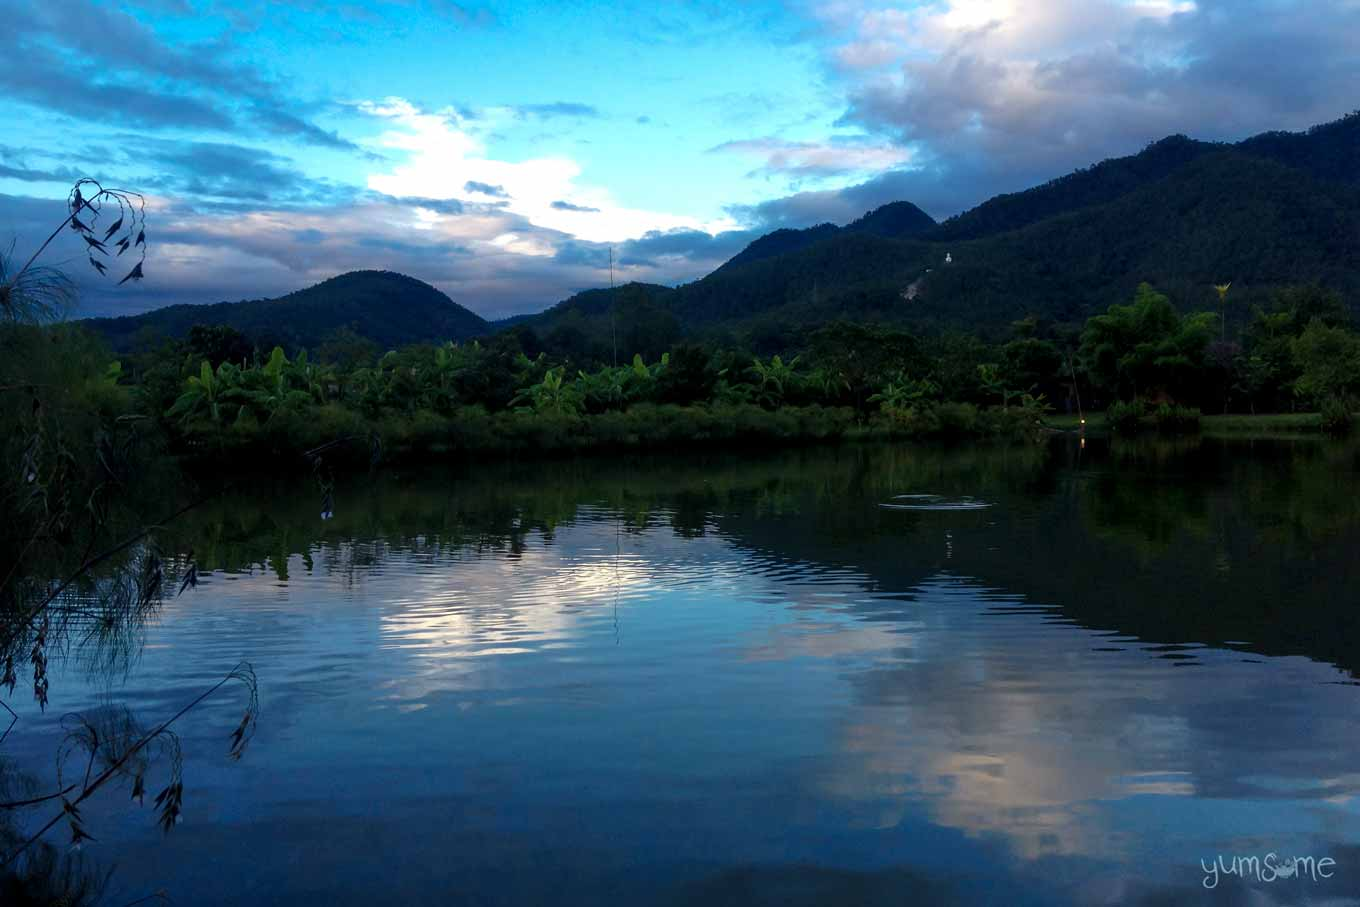 Sunrise over the lake at Bueng Pai Farm, with trees and mountains in the distance.